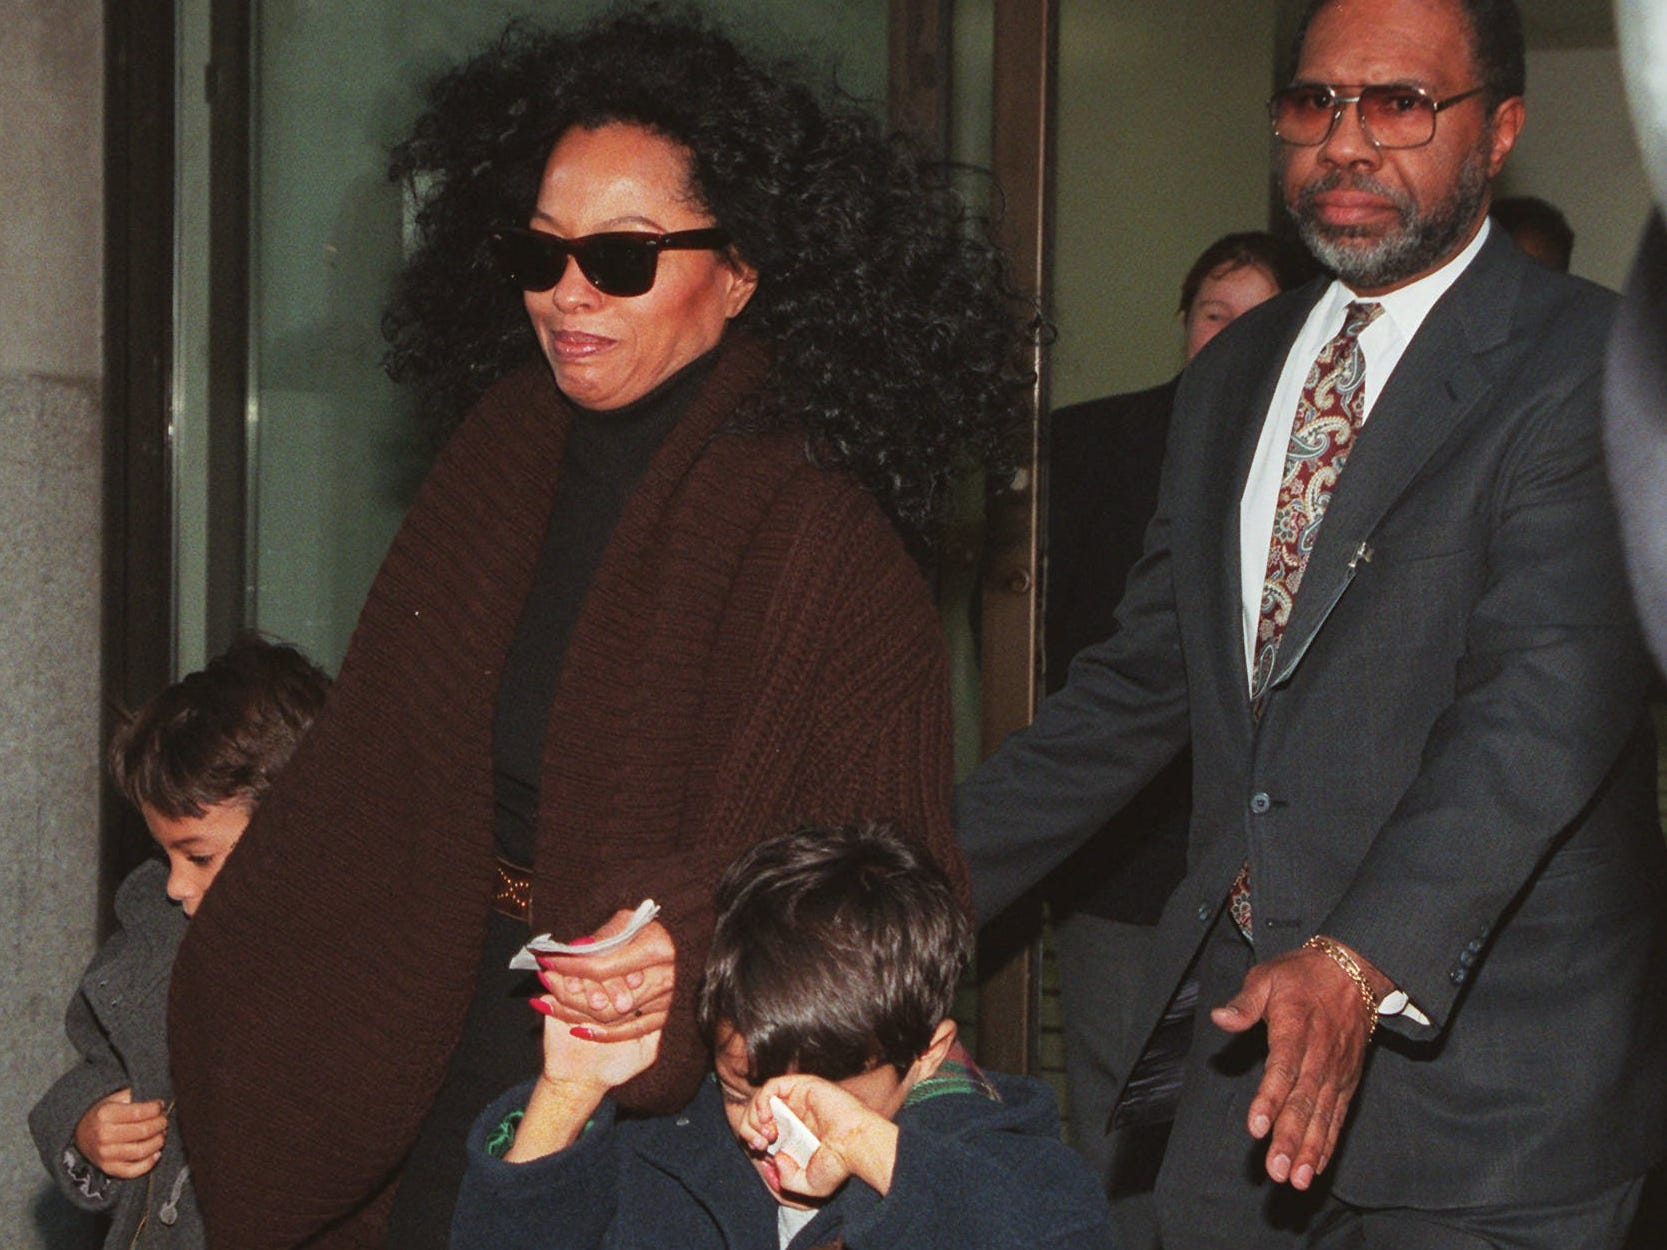 Diana Ross, children in hand, exits Beth Israel Medical Center North in New York Friday, Dec. 8, 1995, where Michael Jackson was in intensive care and being treated for a variety of conditions. He was found semiconscious on the side of a stage where he had been rehearsing for an HBO concert special.